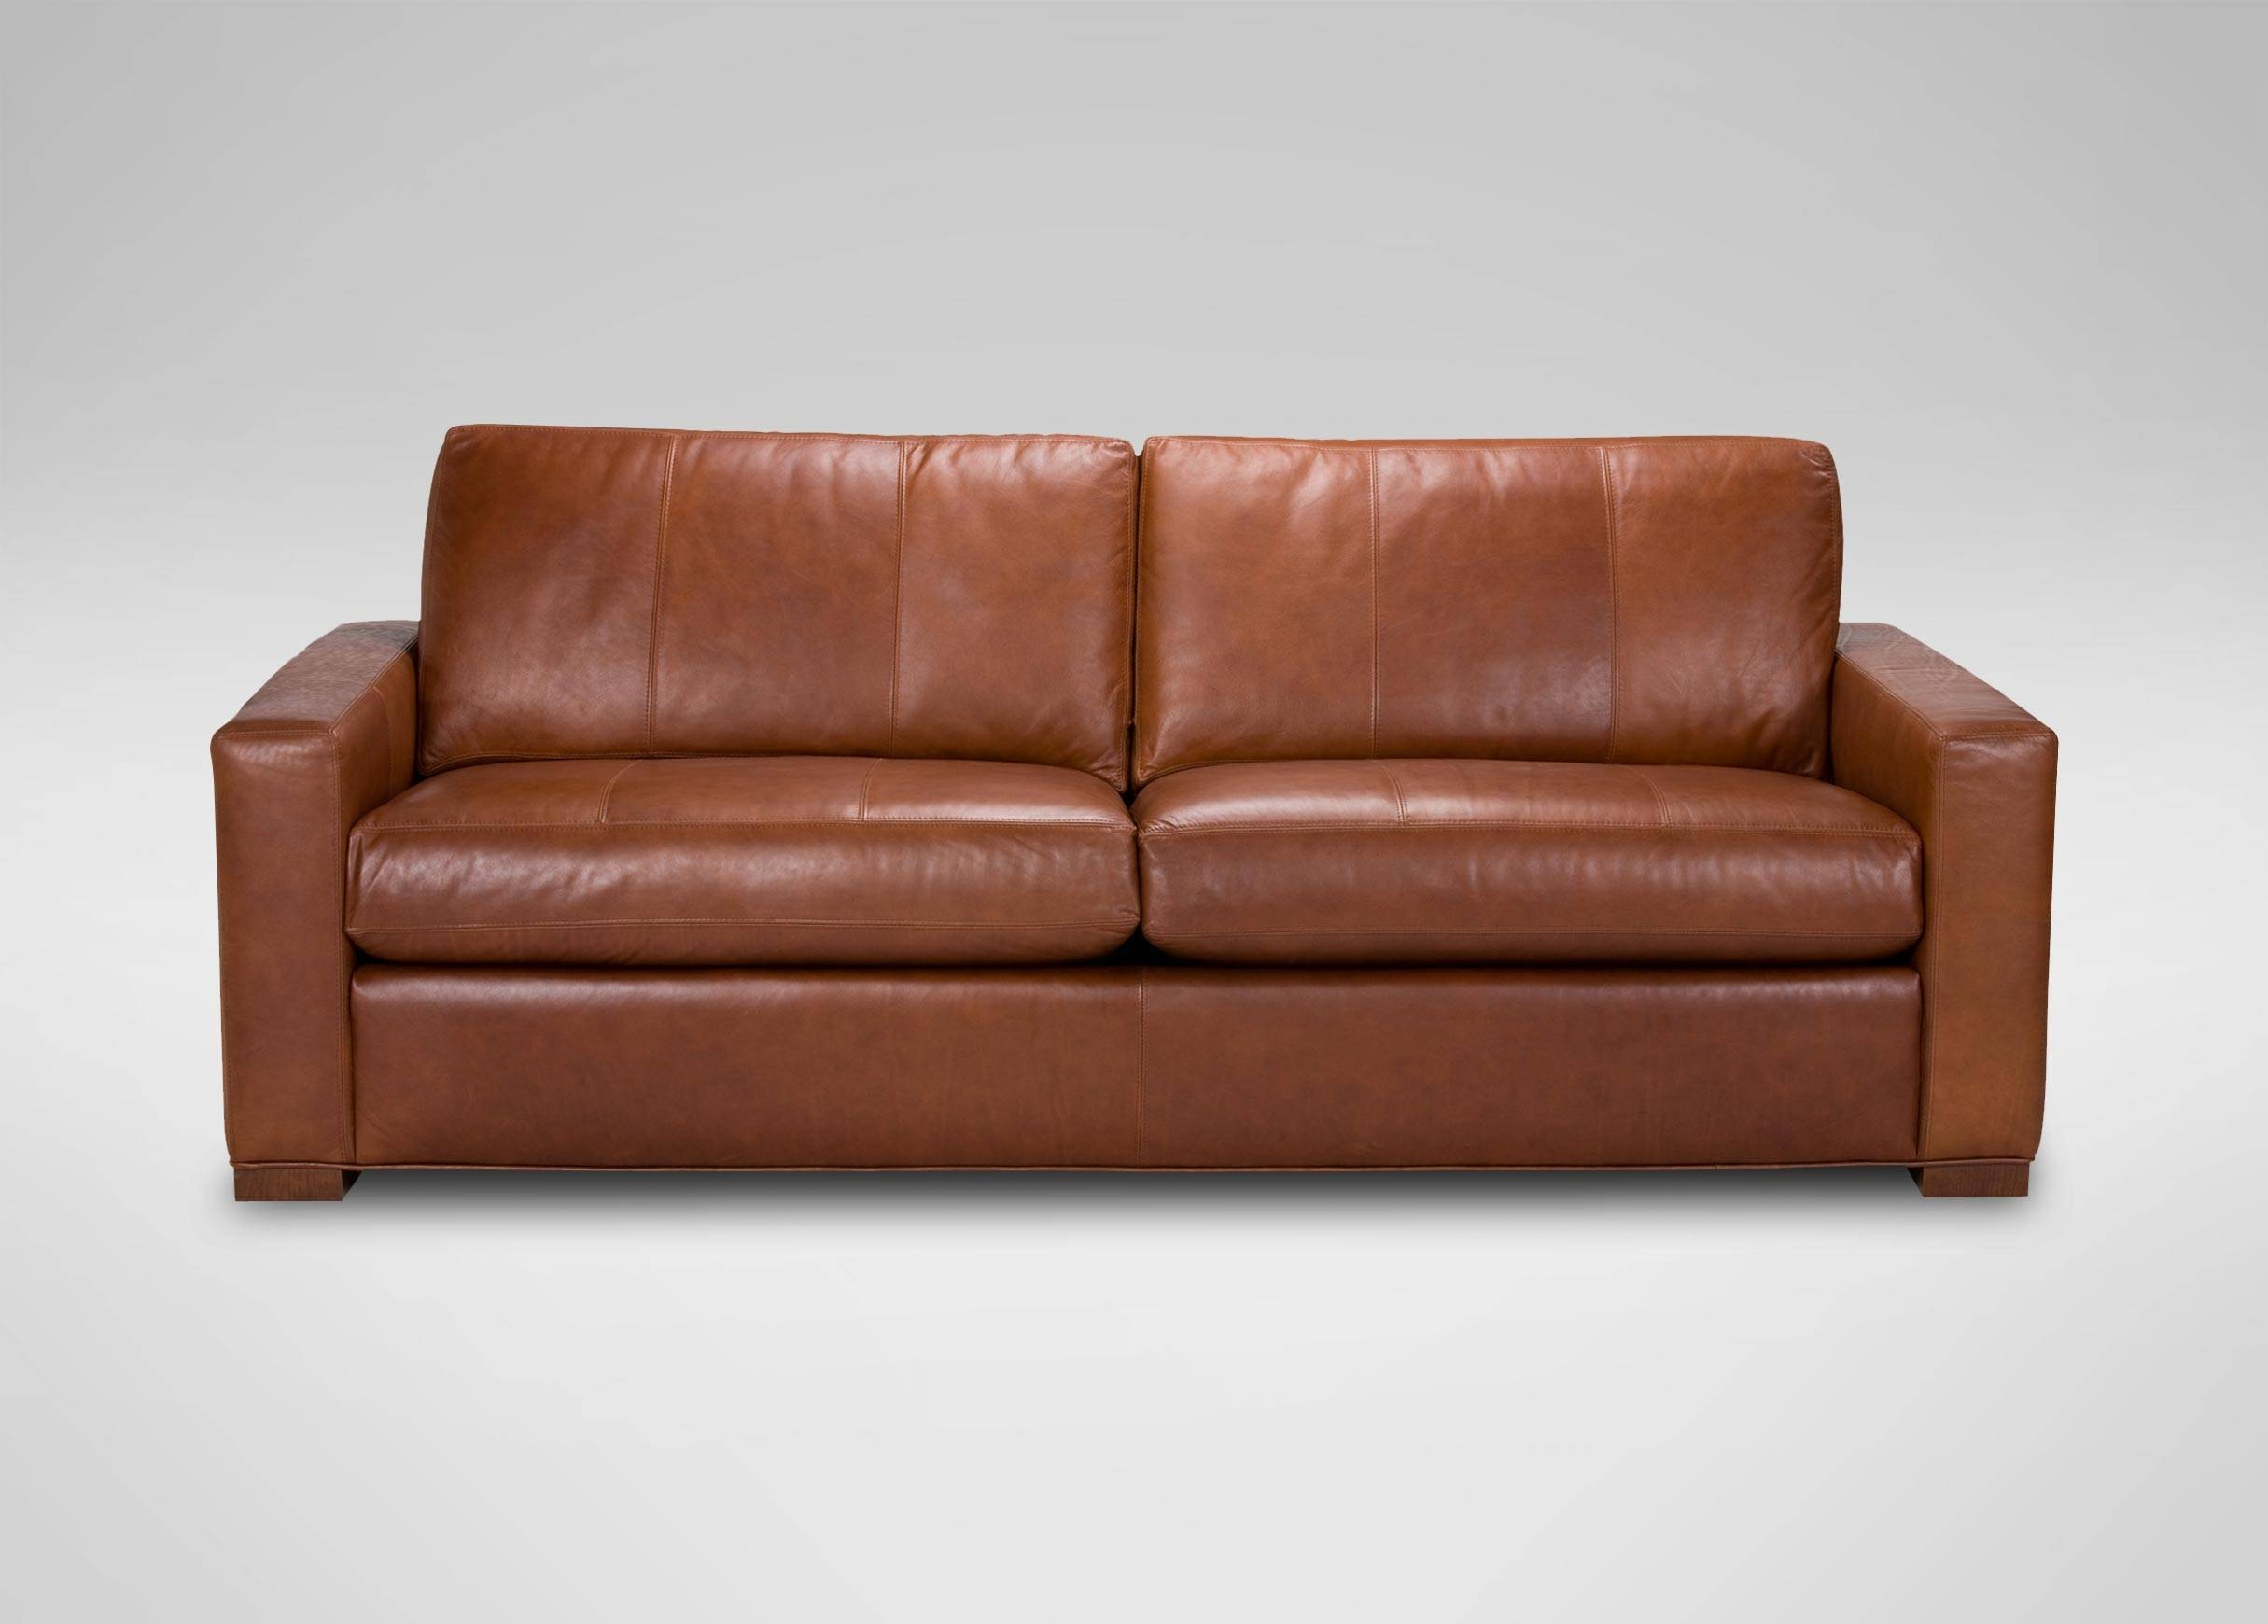 Hudson Leather Sofa | Sofas & Loveseats For Caramel Leather Sofas (View 8 of 15)